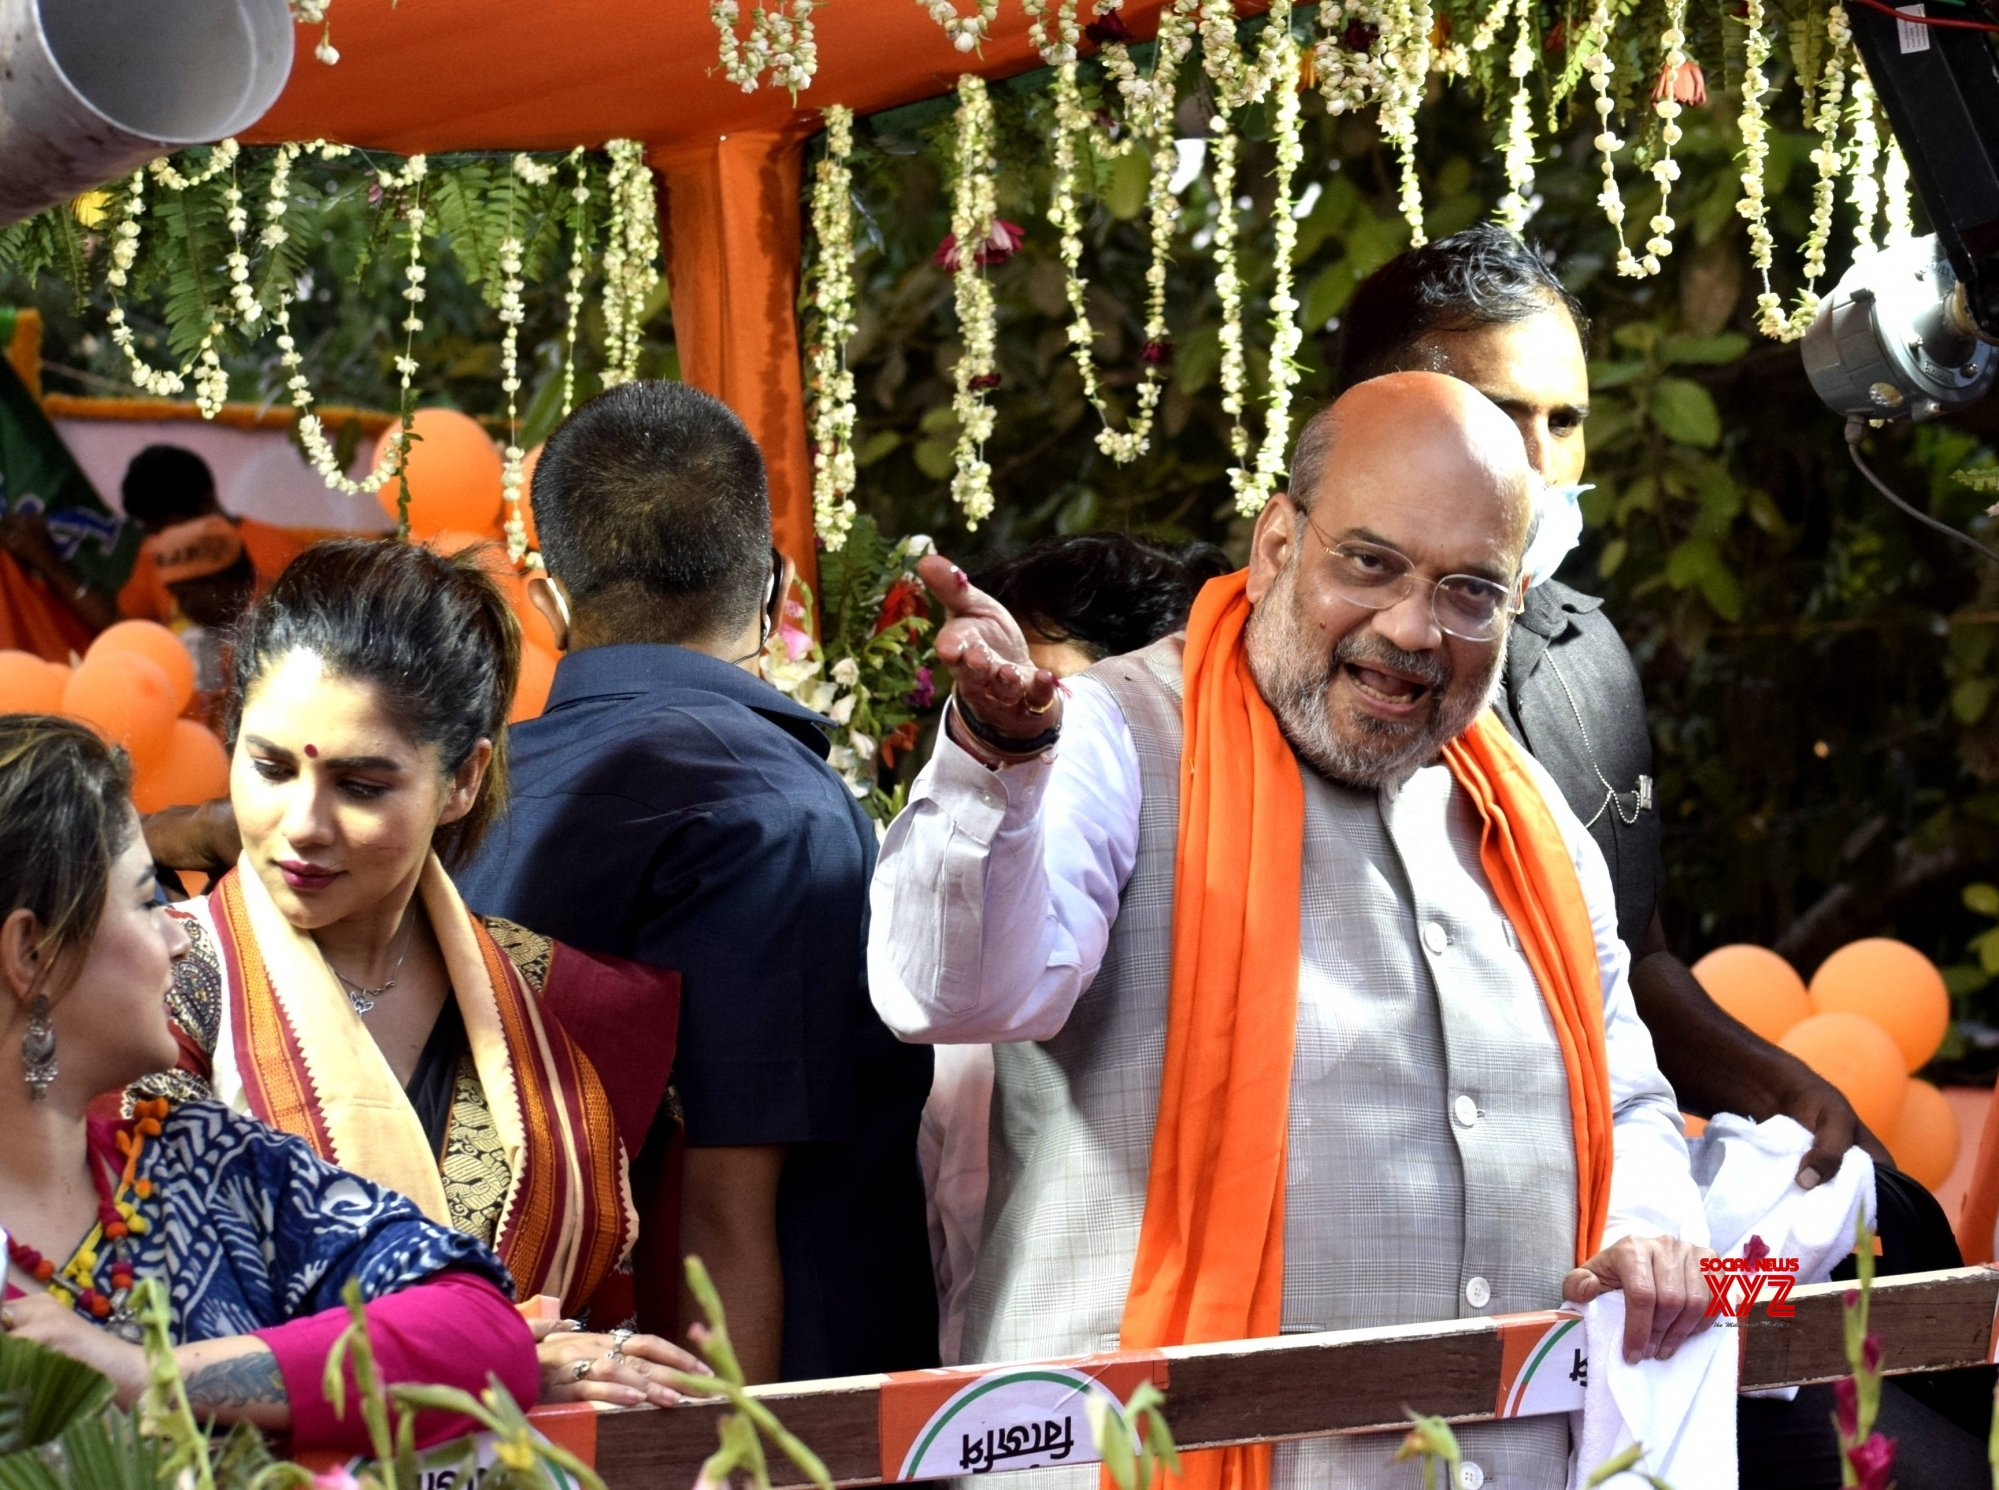 Kolkata :Indian Minister of Home Affairs Amit Shah at a road show in support of BJP candidates Babul Supriyo, Payal Sarkar, Srabanti Chatterjee for State Assembly election in Kolkata on April 7, 2021. #Gallery